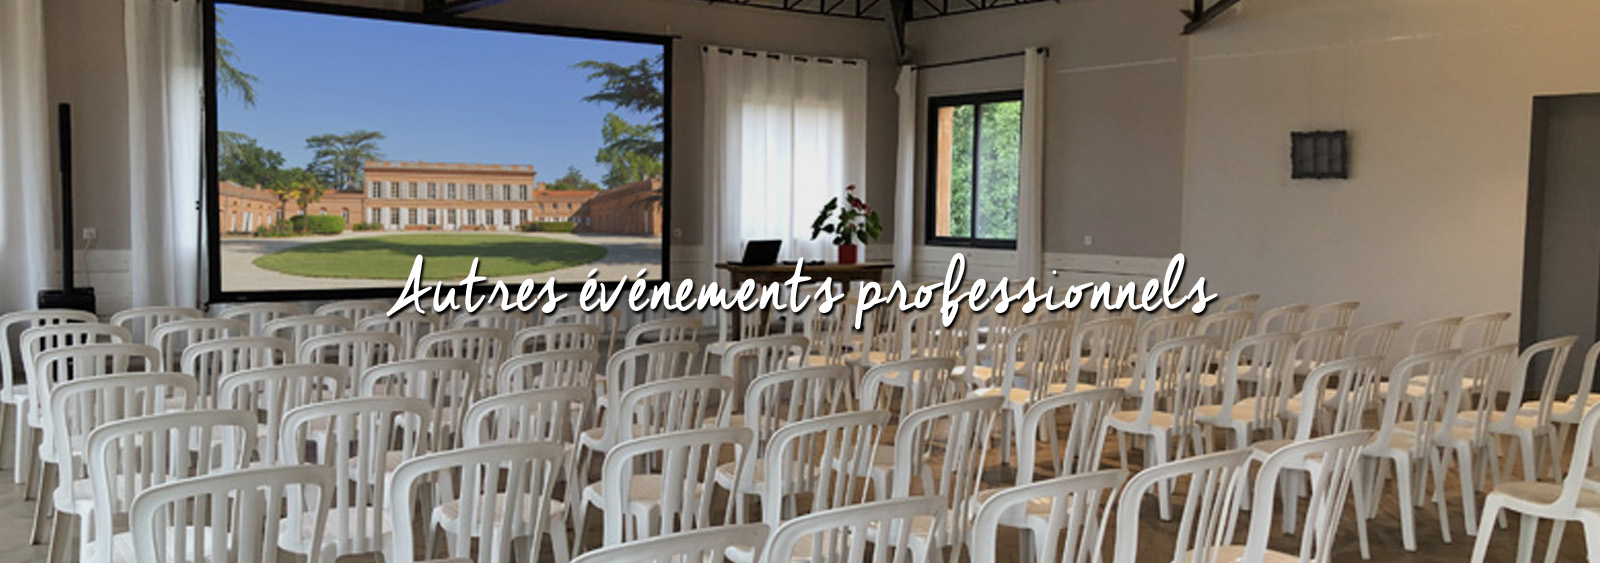 Chateau-lavalade-autres-evenements-professionnels-slider